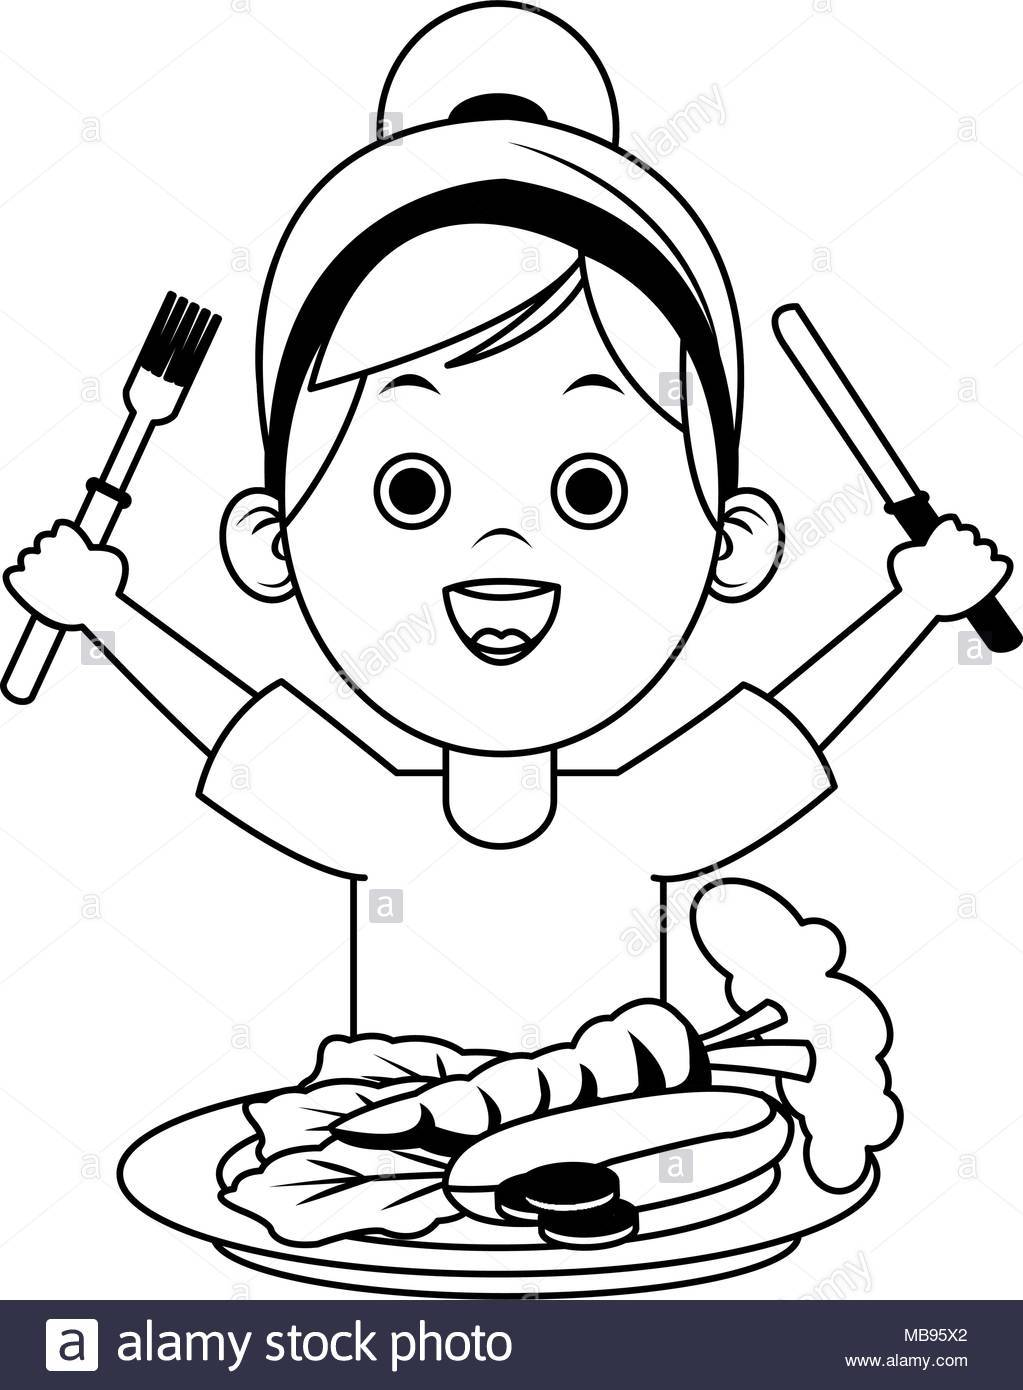 Child eating healthy food clipart black and white 6 » Clipart Portal.